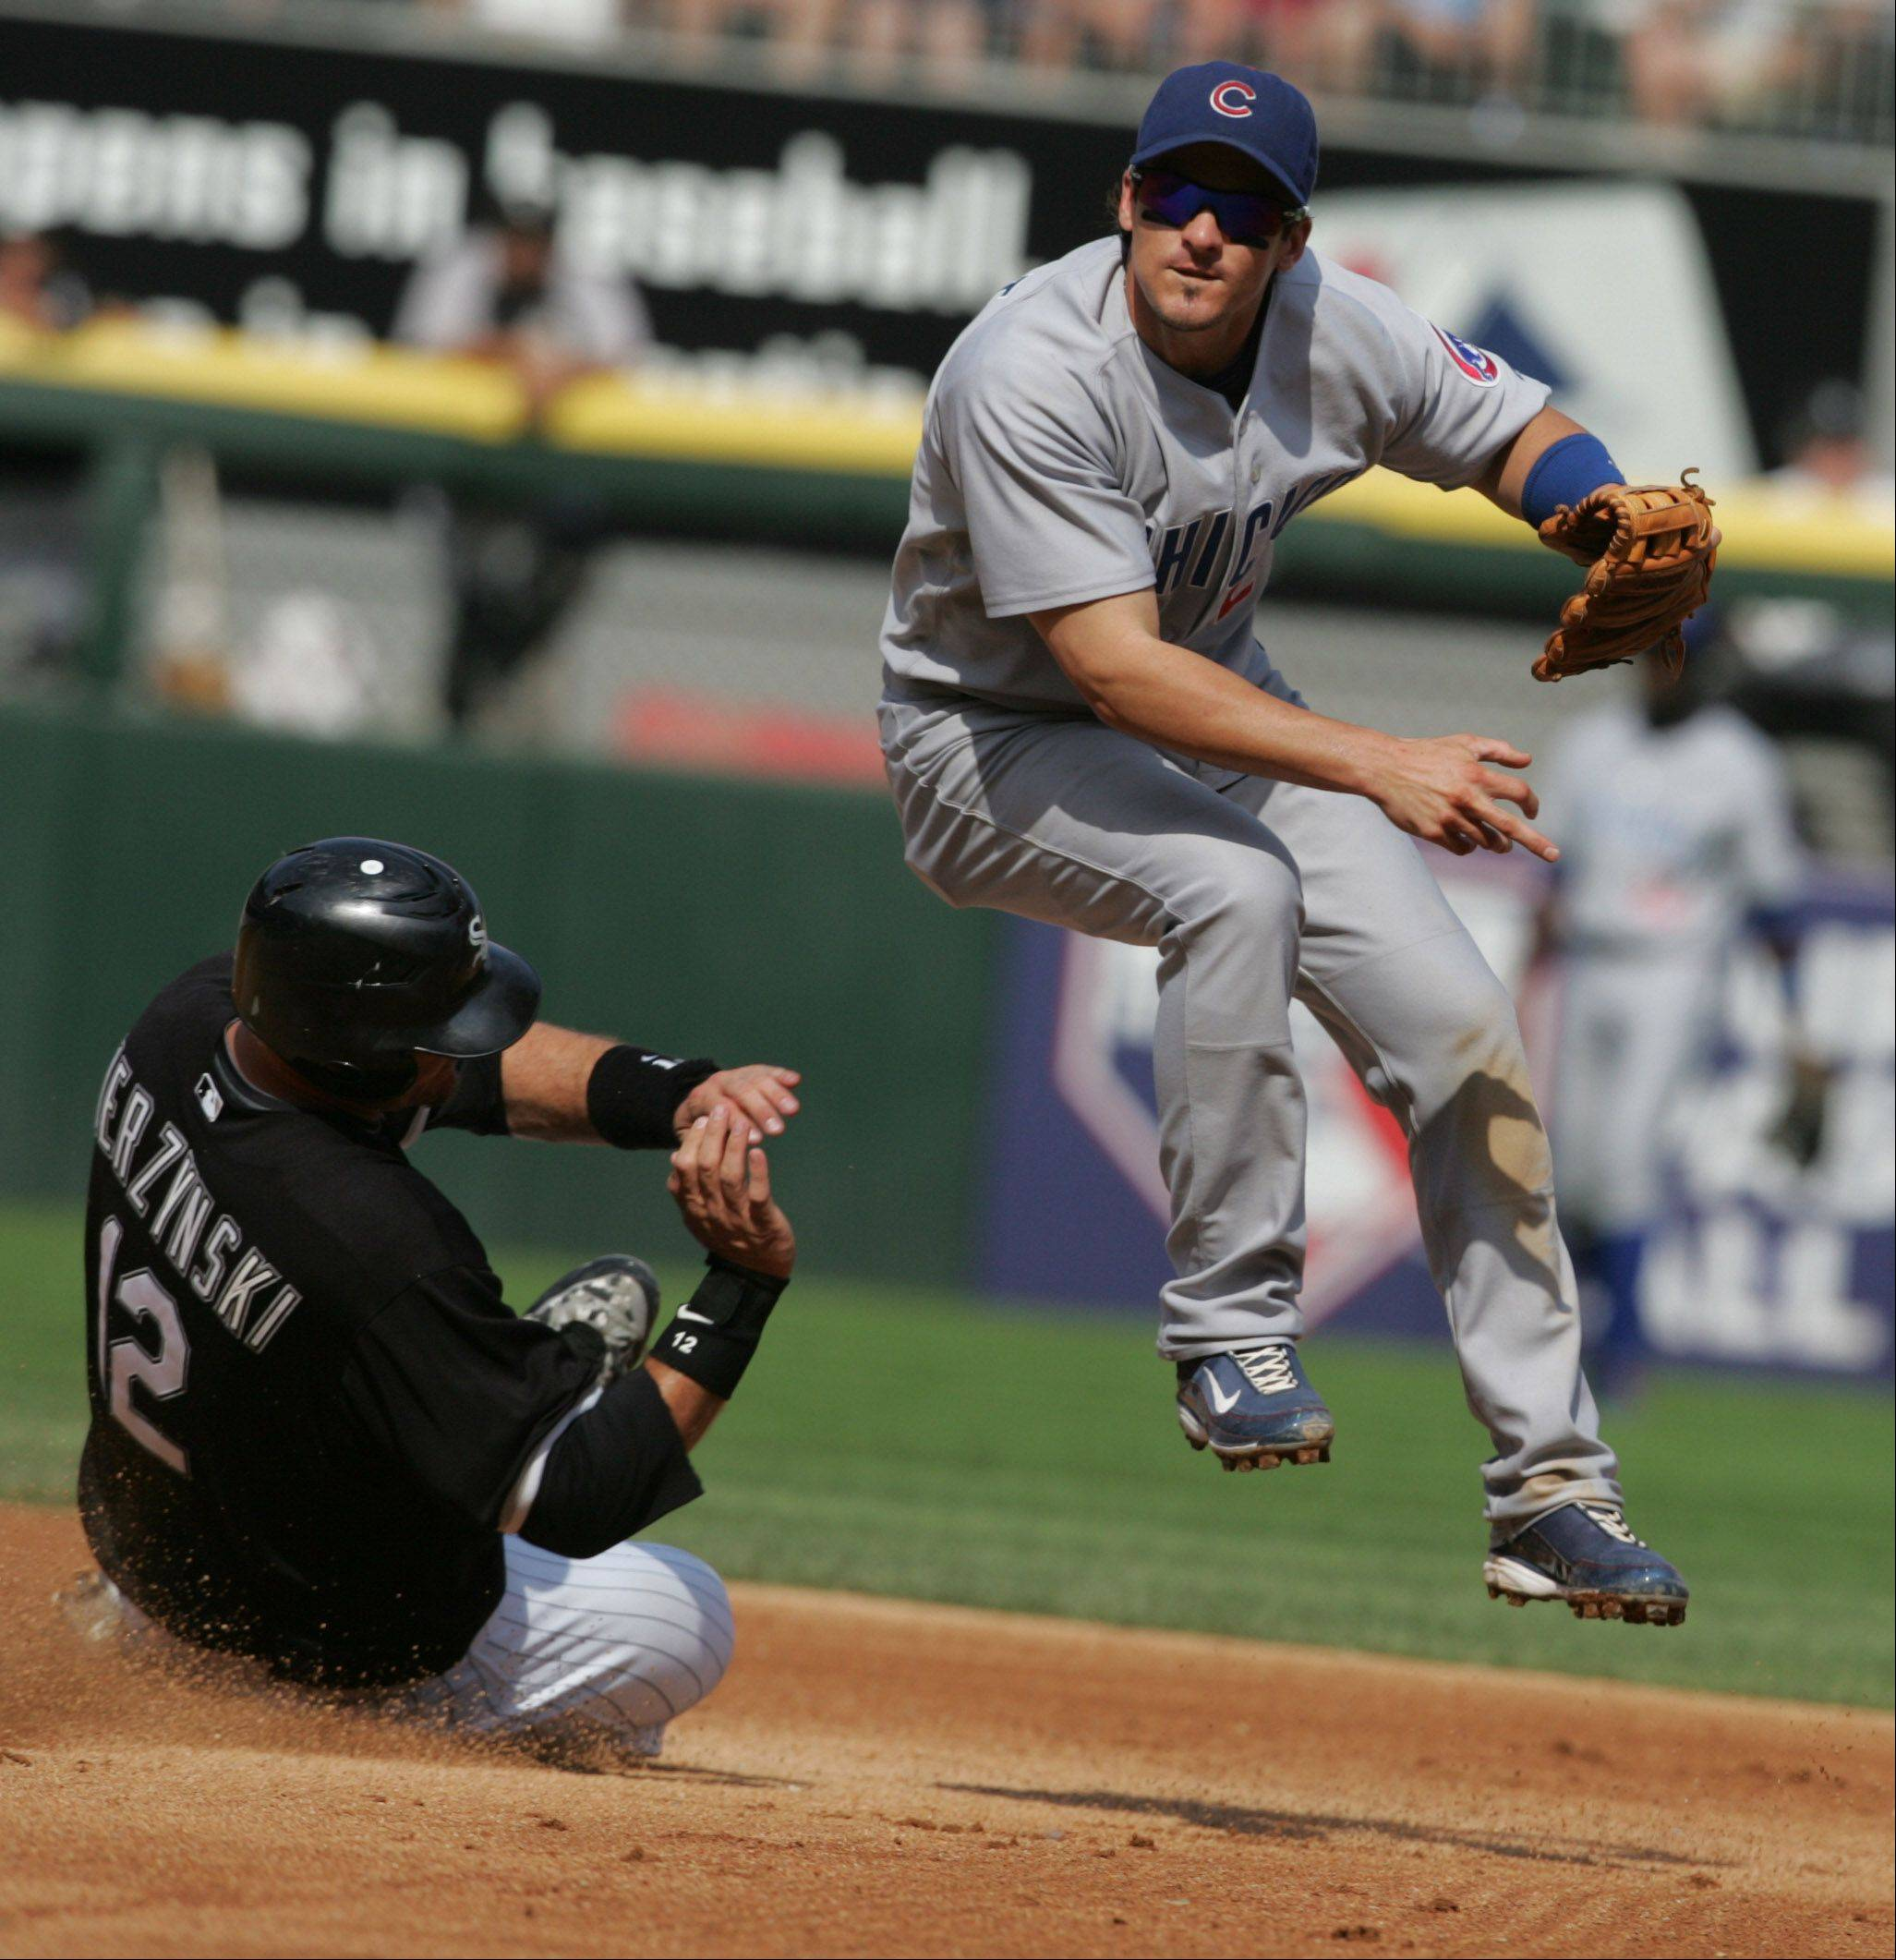 Cubs Ryan Theriot tries for a double play as Sox A.J. Pierzynski slides into second out on Saturday June 28th.